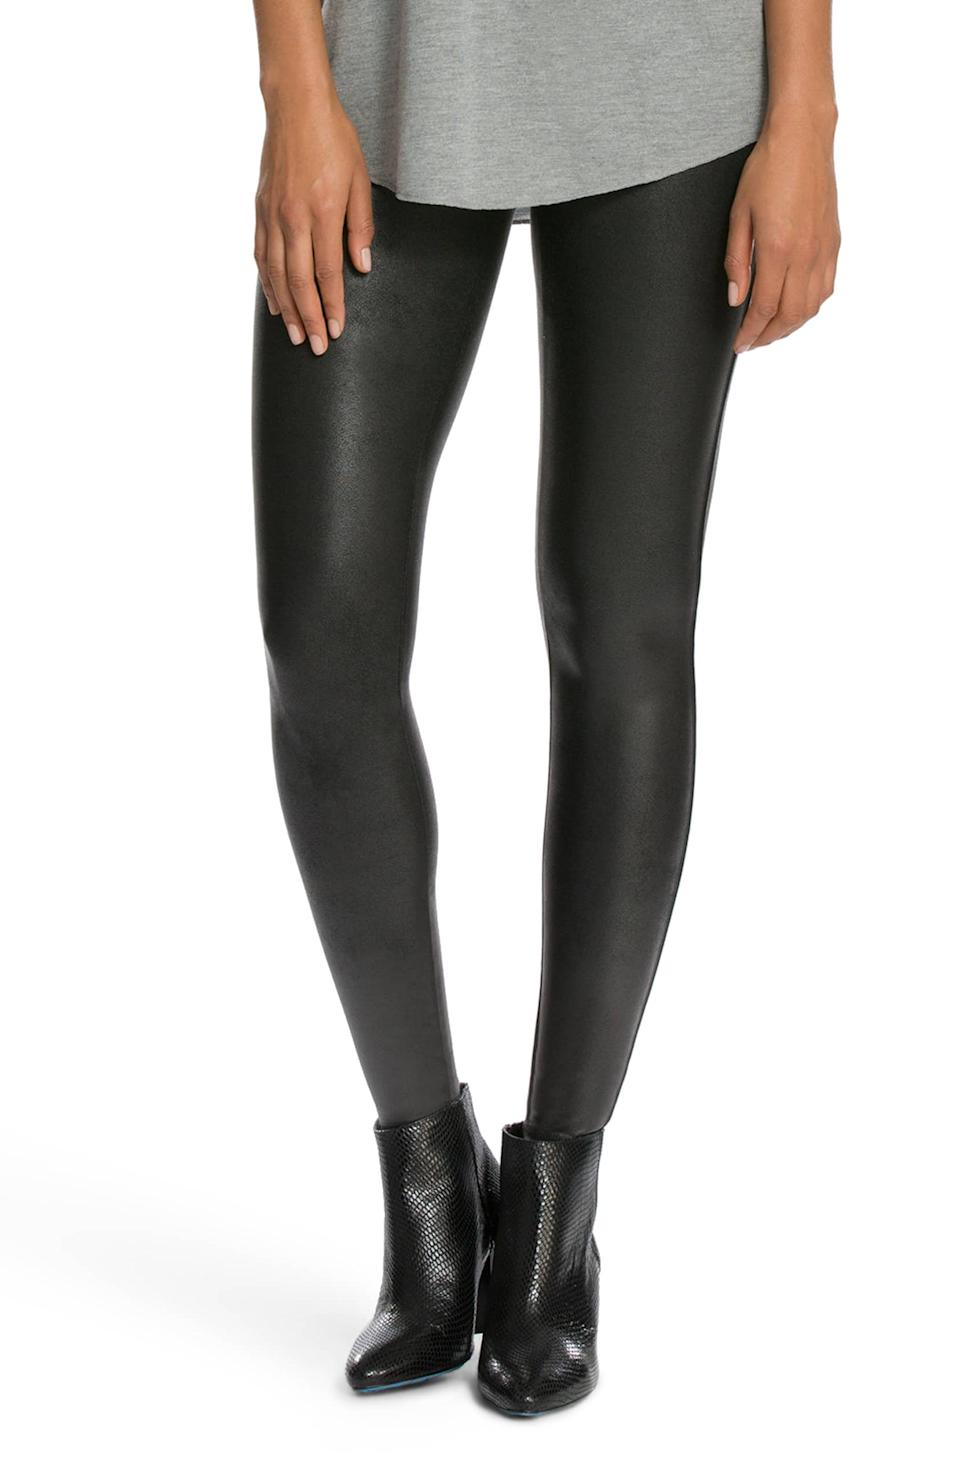 """<strong><h3>Spanx: The Going Out Legging</h3></strong> <br>If you're of the """"ride or die"""" variety when it comes to leggings, then you'll know they don't have to be reserved for just the day time. These faux leather leggings are your Friday nights' new best friend.<br><br><strong>The hype:</strong> 4.5 out of 5 stars and 2,644 reviews on Nordstrom<br><br><strong>What they're saying:</strong> """"I've been looking at these leggings for over a year! I wanted them but wasn't sure I could justify the cost for """"leggings""""... seriously, don't even think twice! They are amazing!! The can be dressed up or down so easily! they are so comfortable and really do compress/smooth in the right places!!! I immediately ordered the motto [sic] style the day these came because I love them so much! I am 5'5"""" 140lbs and ordered a medium! They fit great!"""" - Harlihol, Nordstrom Review<br><br><strong>SPANX</strong> Faux Leather Leggings, $, available at <a href=""""https://shop.nordstrom.com/s/spanx-faux-leather-leggings/3828364#locklink"""" rel=""""nofollow noopener"""" target=""""_blank"""" data-ylk=""""slk:Nordstrom"""" class=""""link rapid-noclick-resp"""">Nordstrom</a><br><br><br><br><br>"""